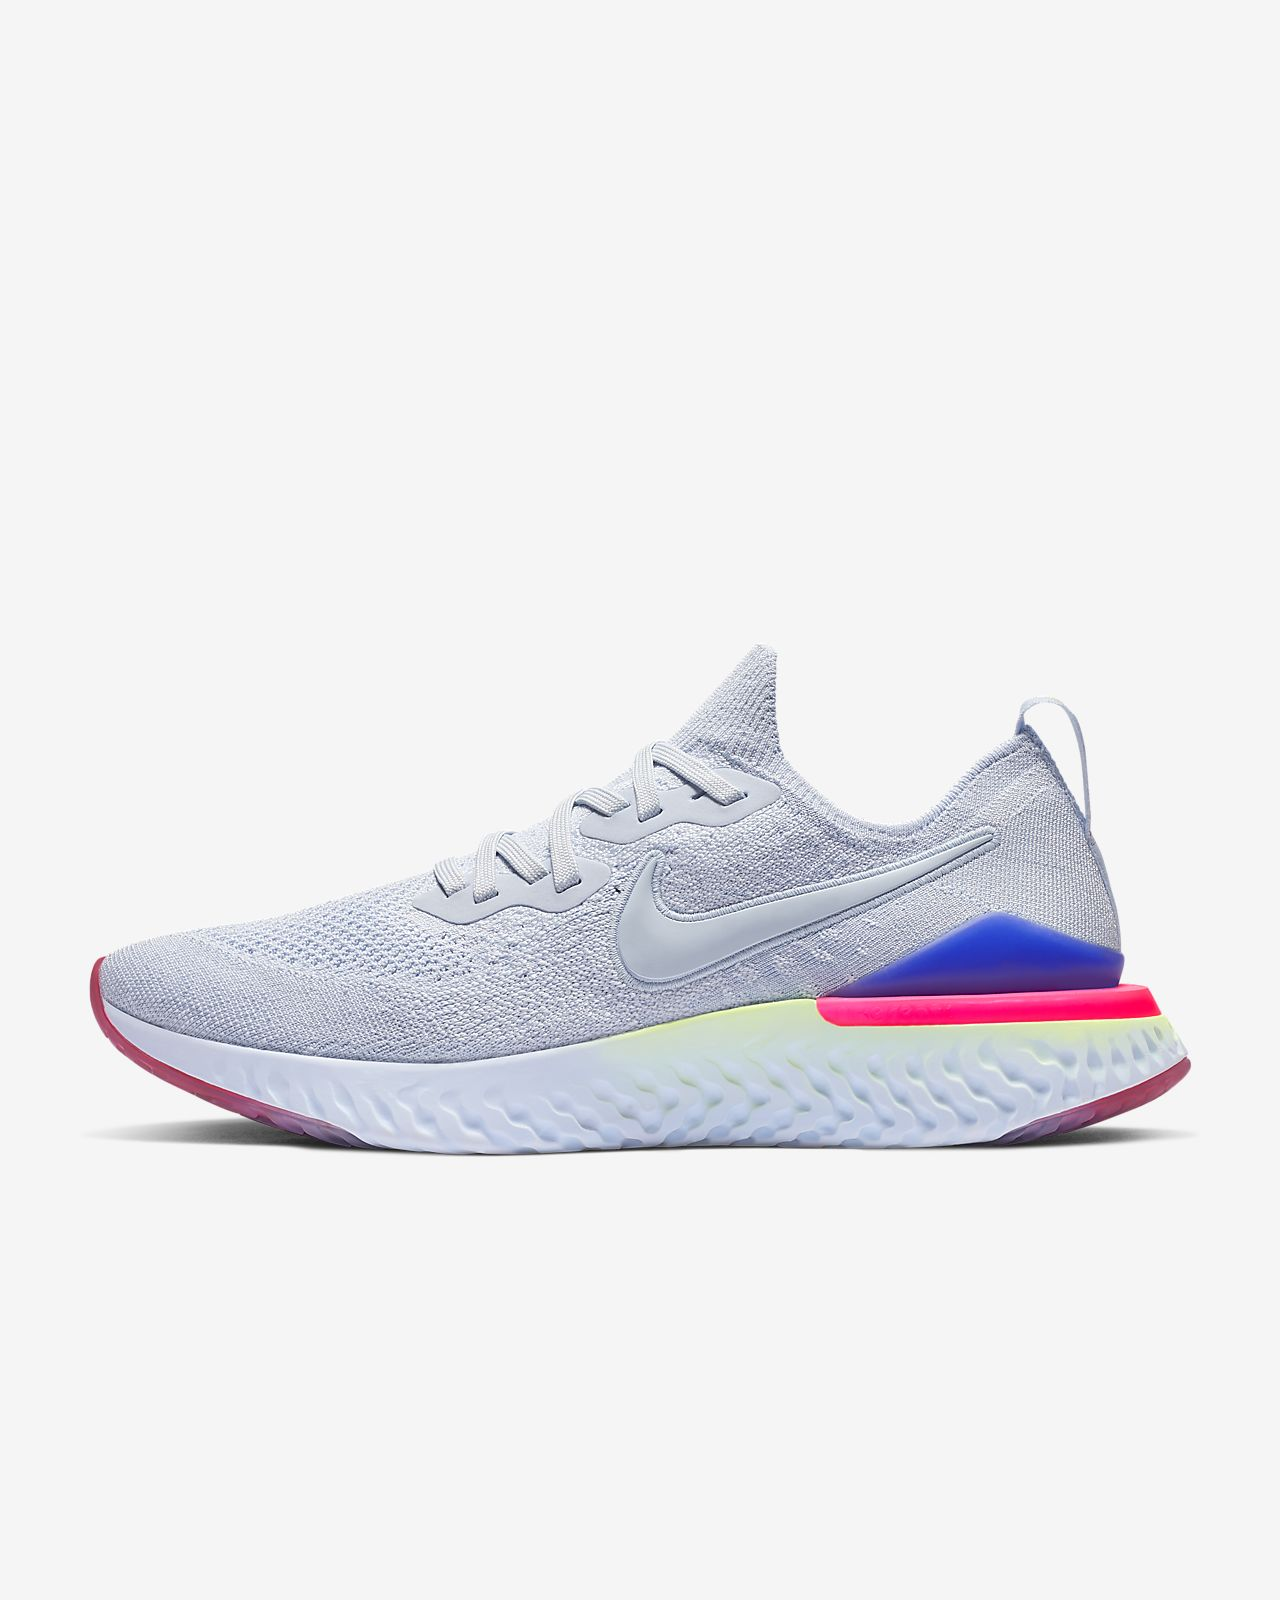 5efa58dcc3bc Women s Running Shoe. Nike Epic React Flyknit 2